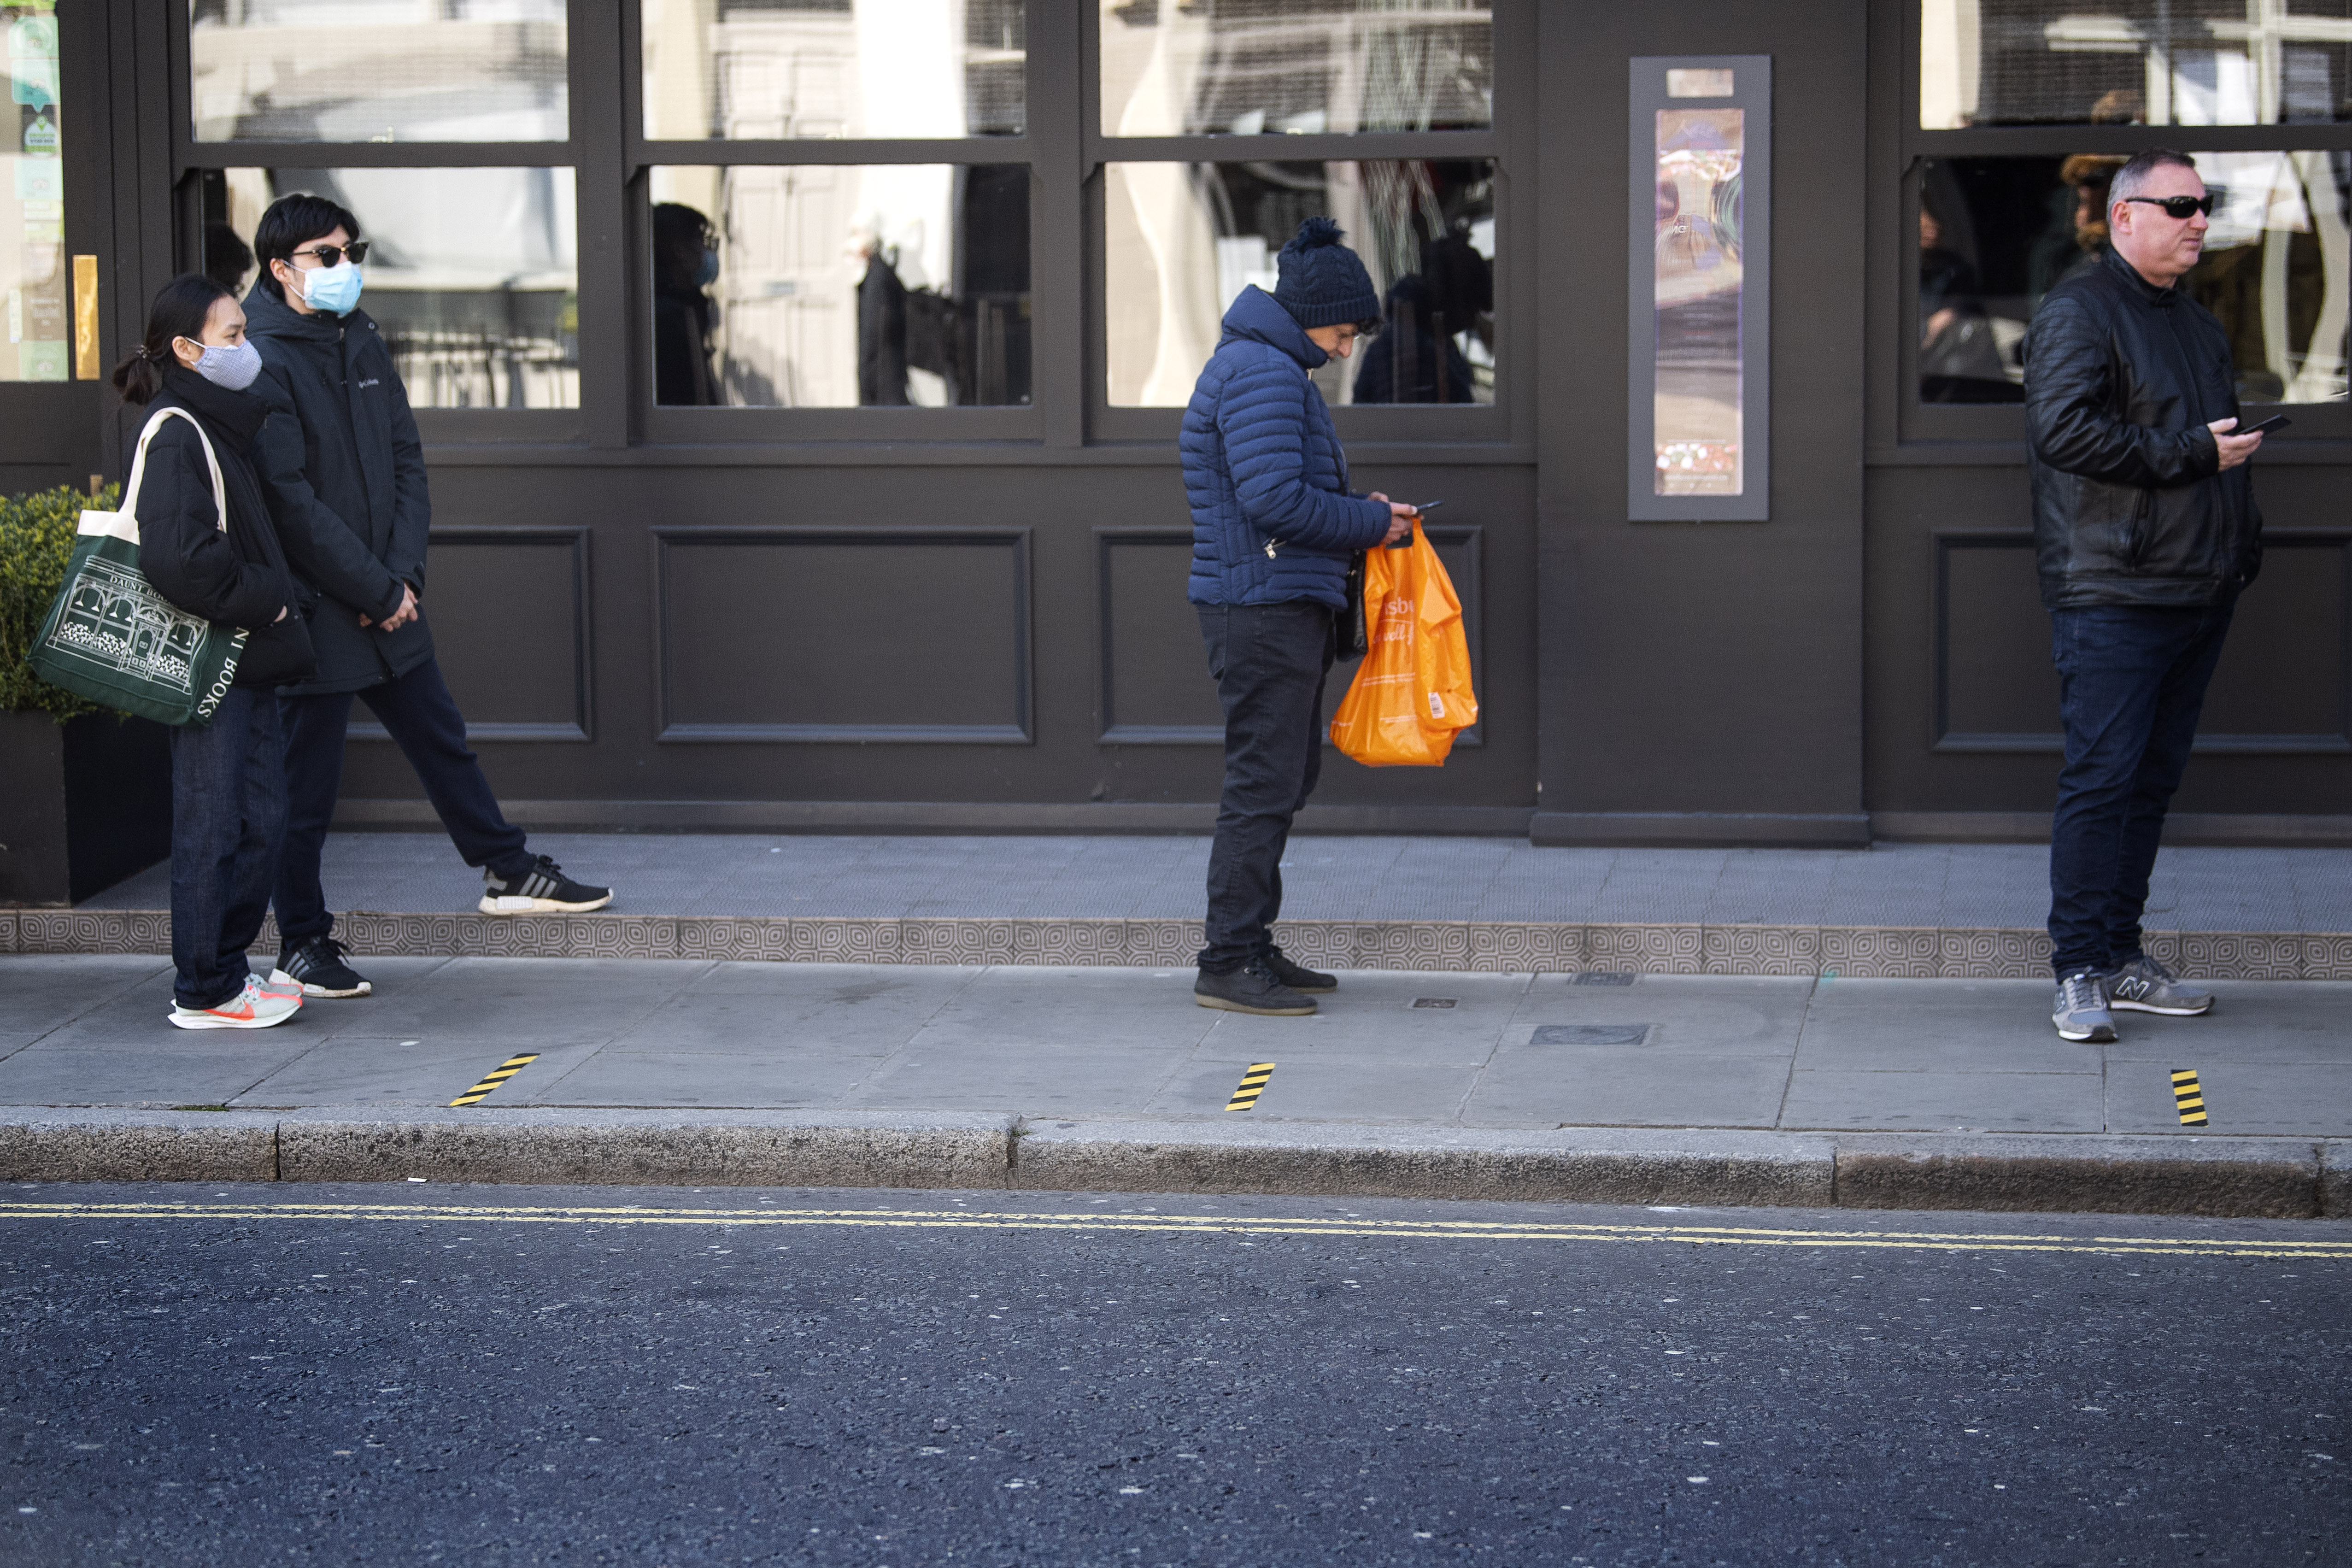 Customers queue between social distancing markers on the pavement outside a supermarket in Westminster, London after Prime Minister Boris Johnson put the UK in lockdown to help curb the spread of the coronavirus.